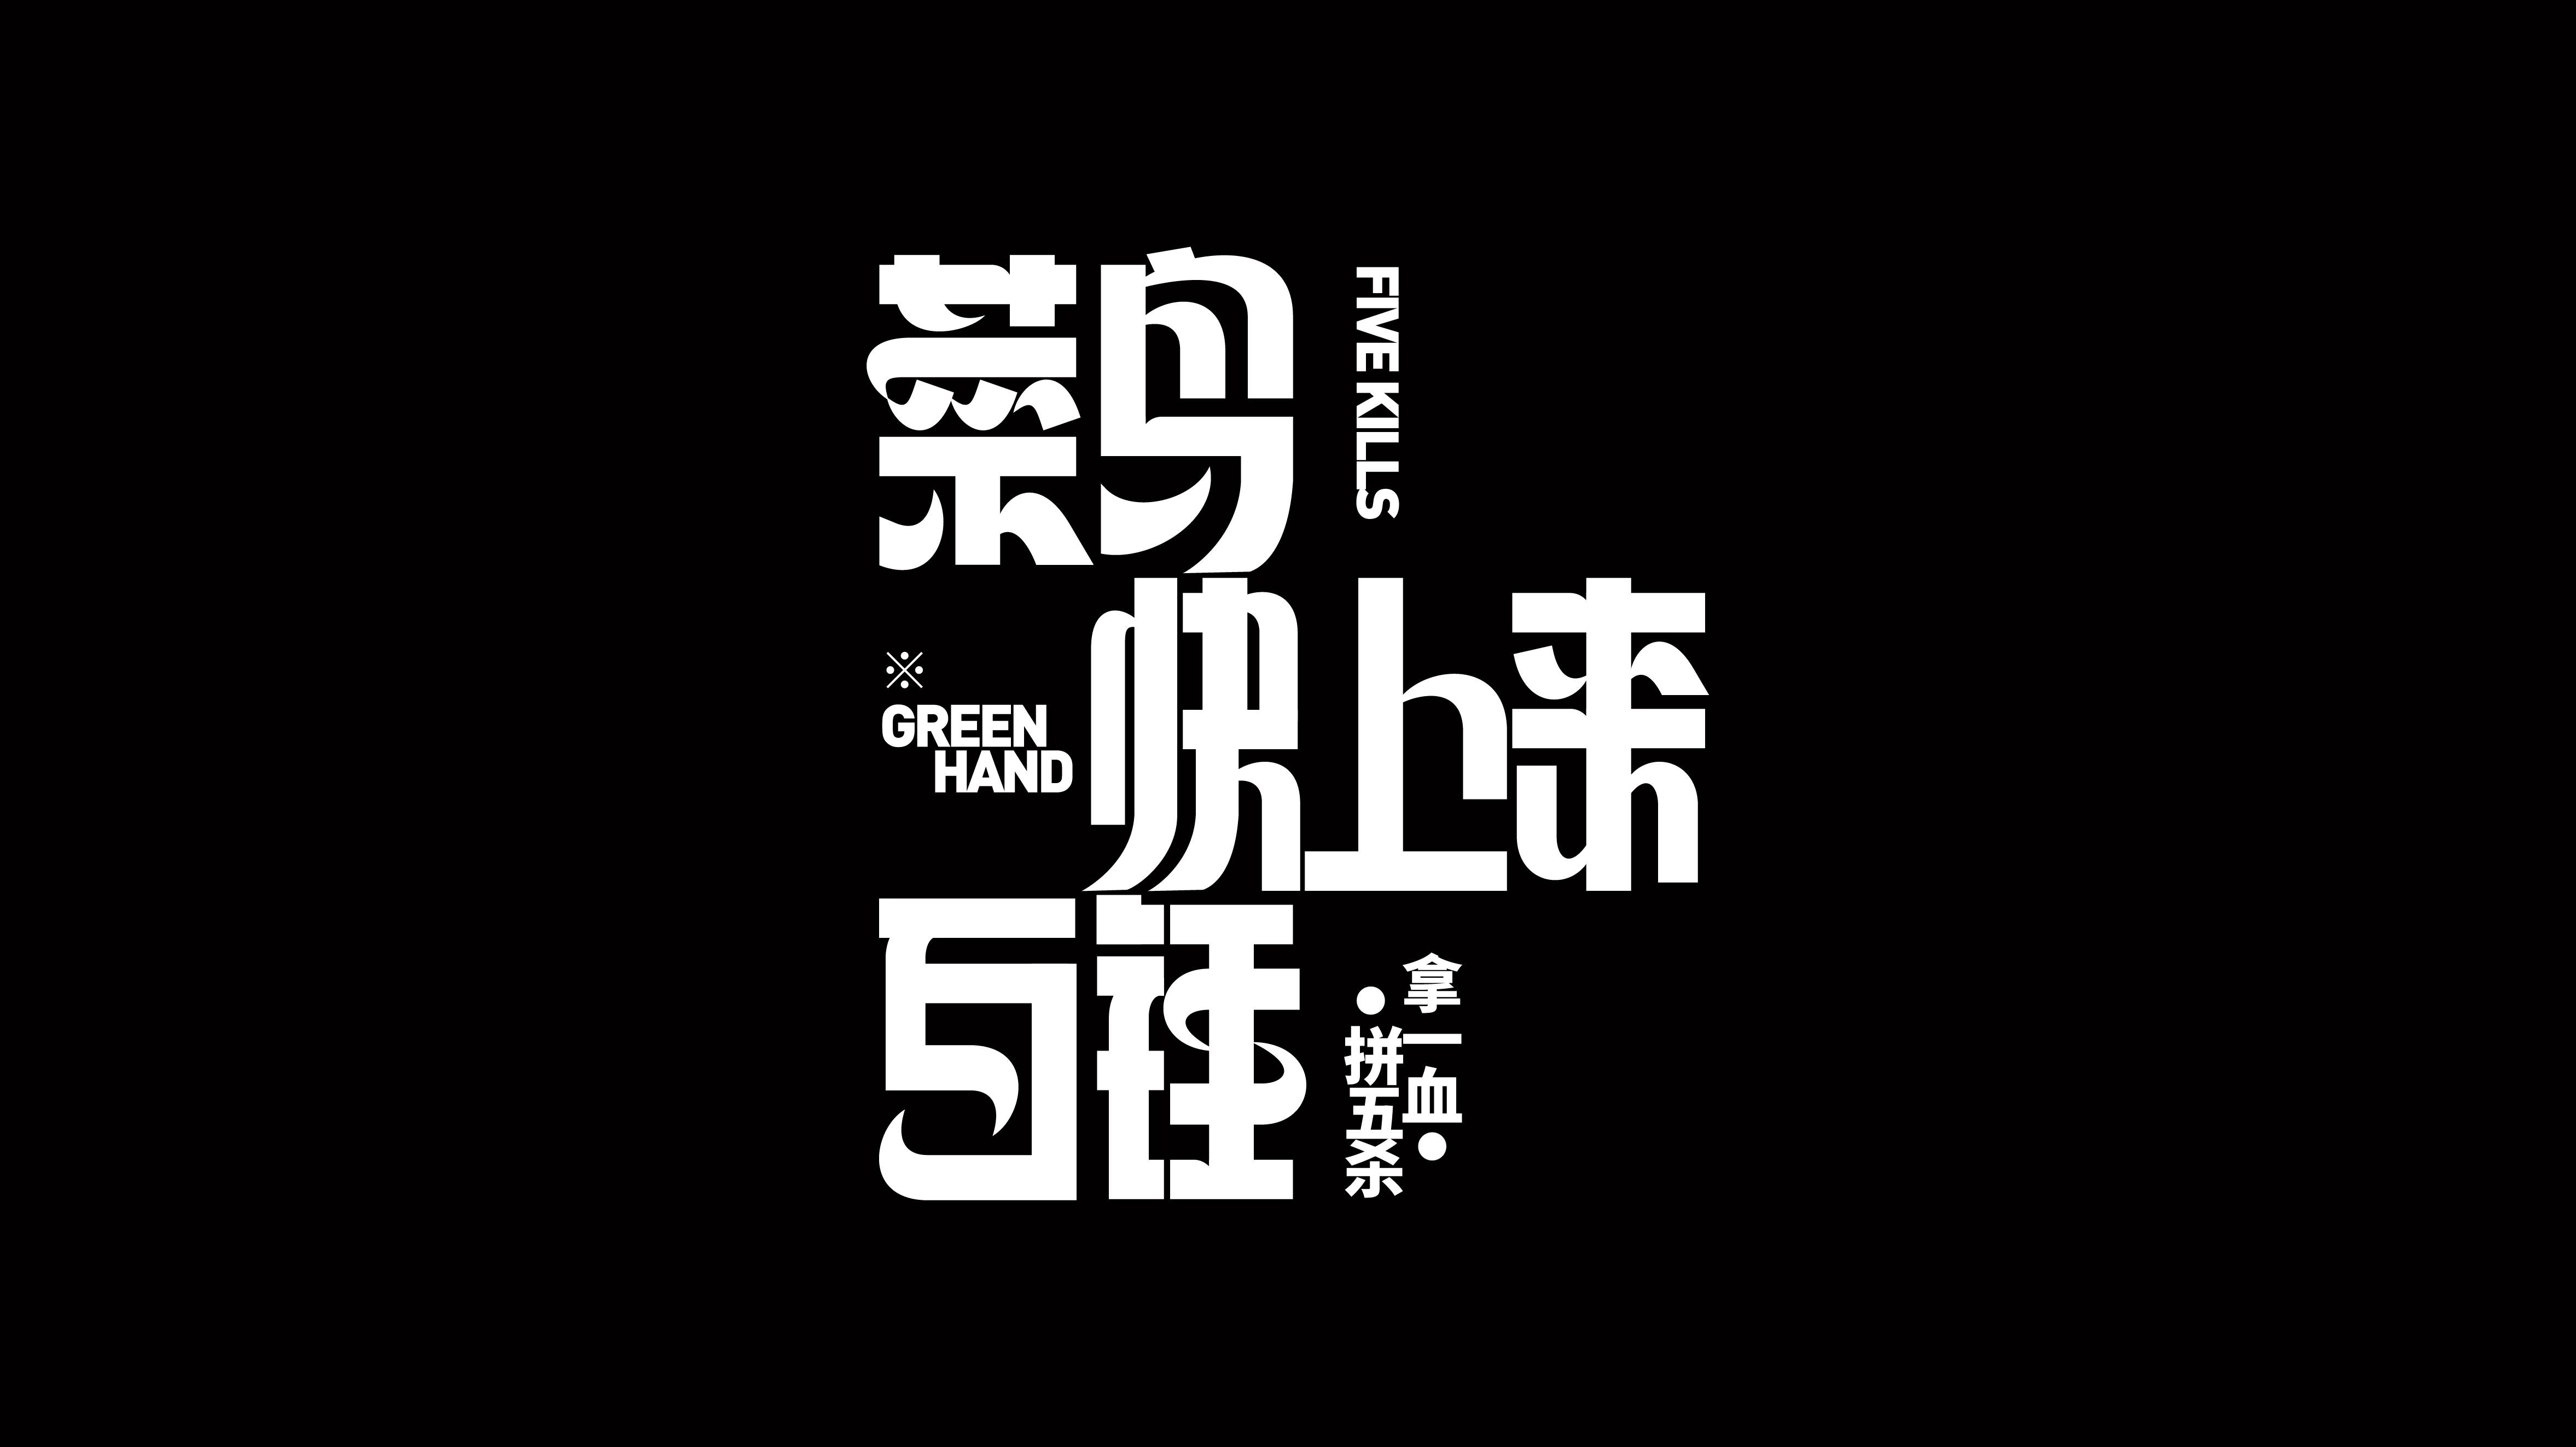 11P Collection of the latest Chinese font design schemes in 2021 #.656